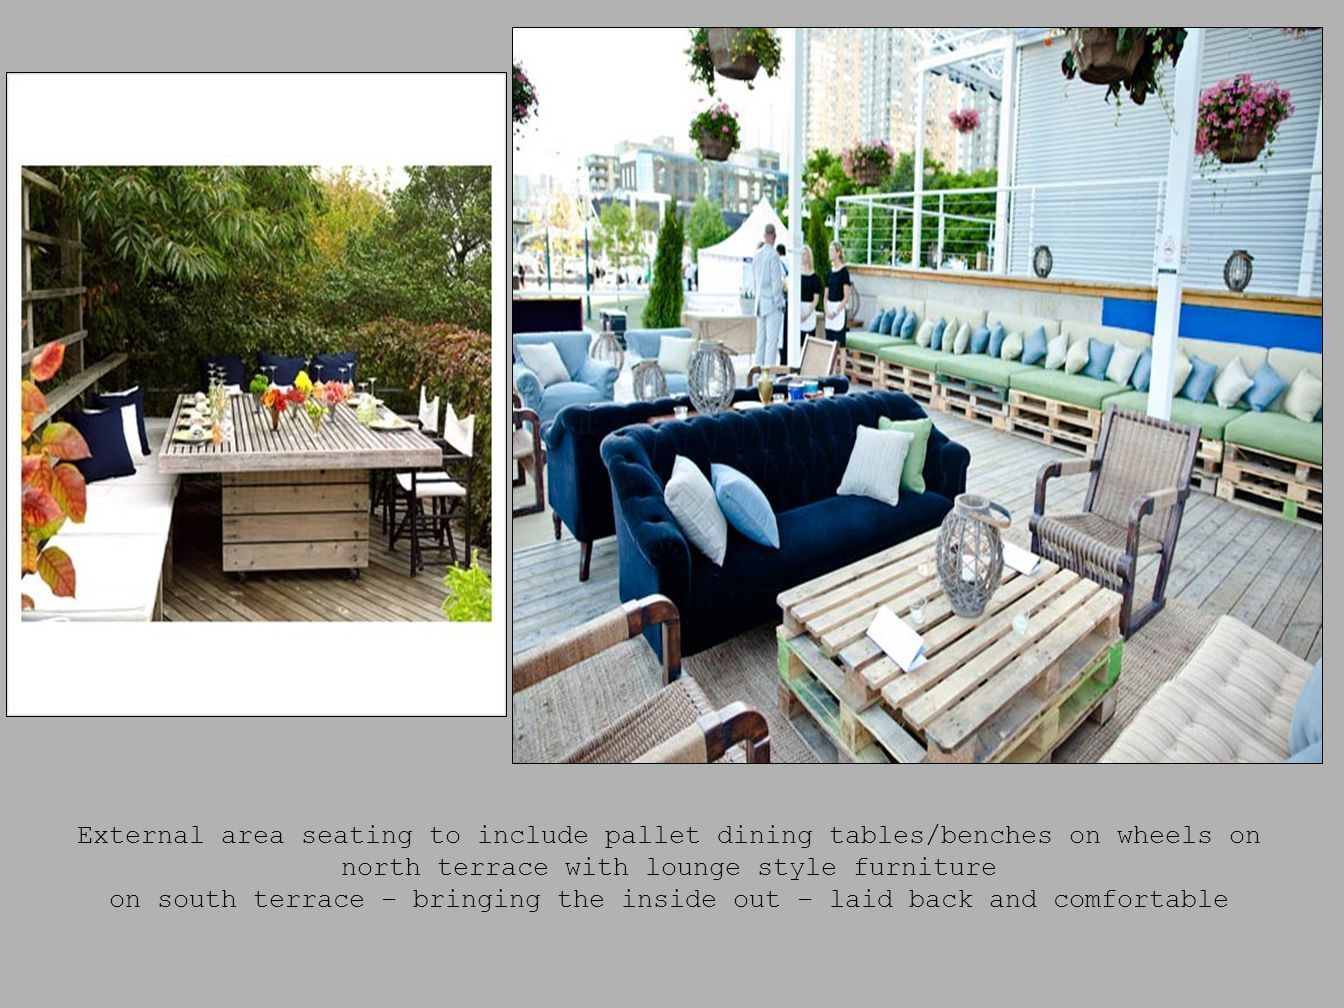 External area seating to include pallet dining tables/benches on wheels on north terrace with lounge style furniture on south terrace – bringing the inside out – laid back and comfortable